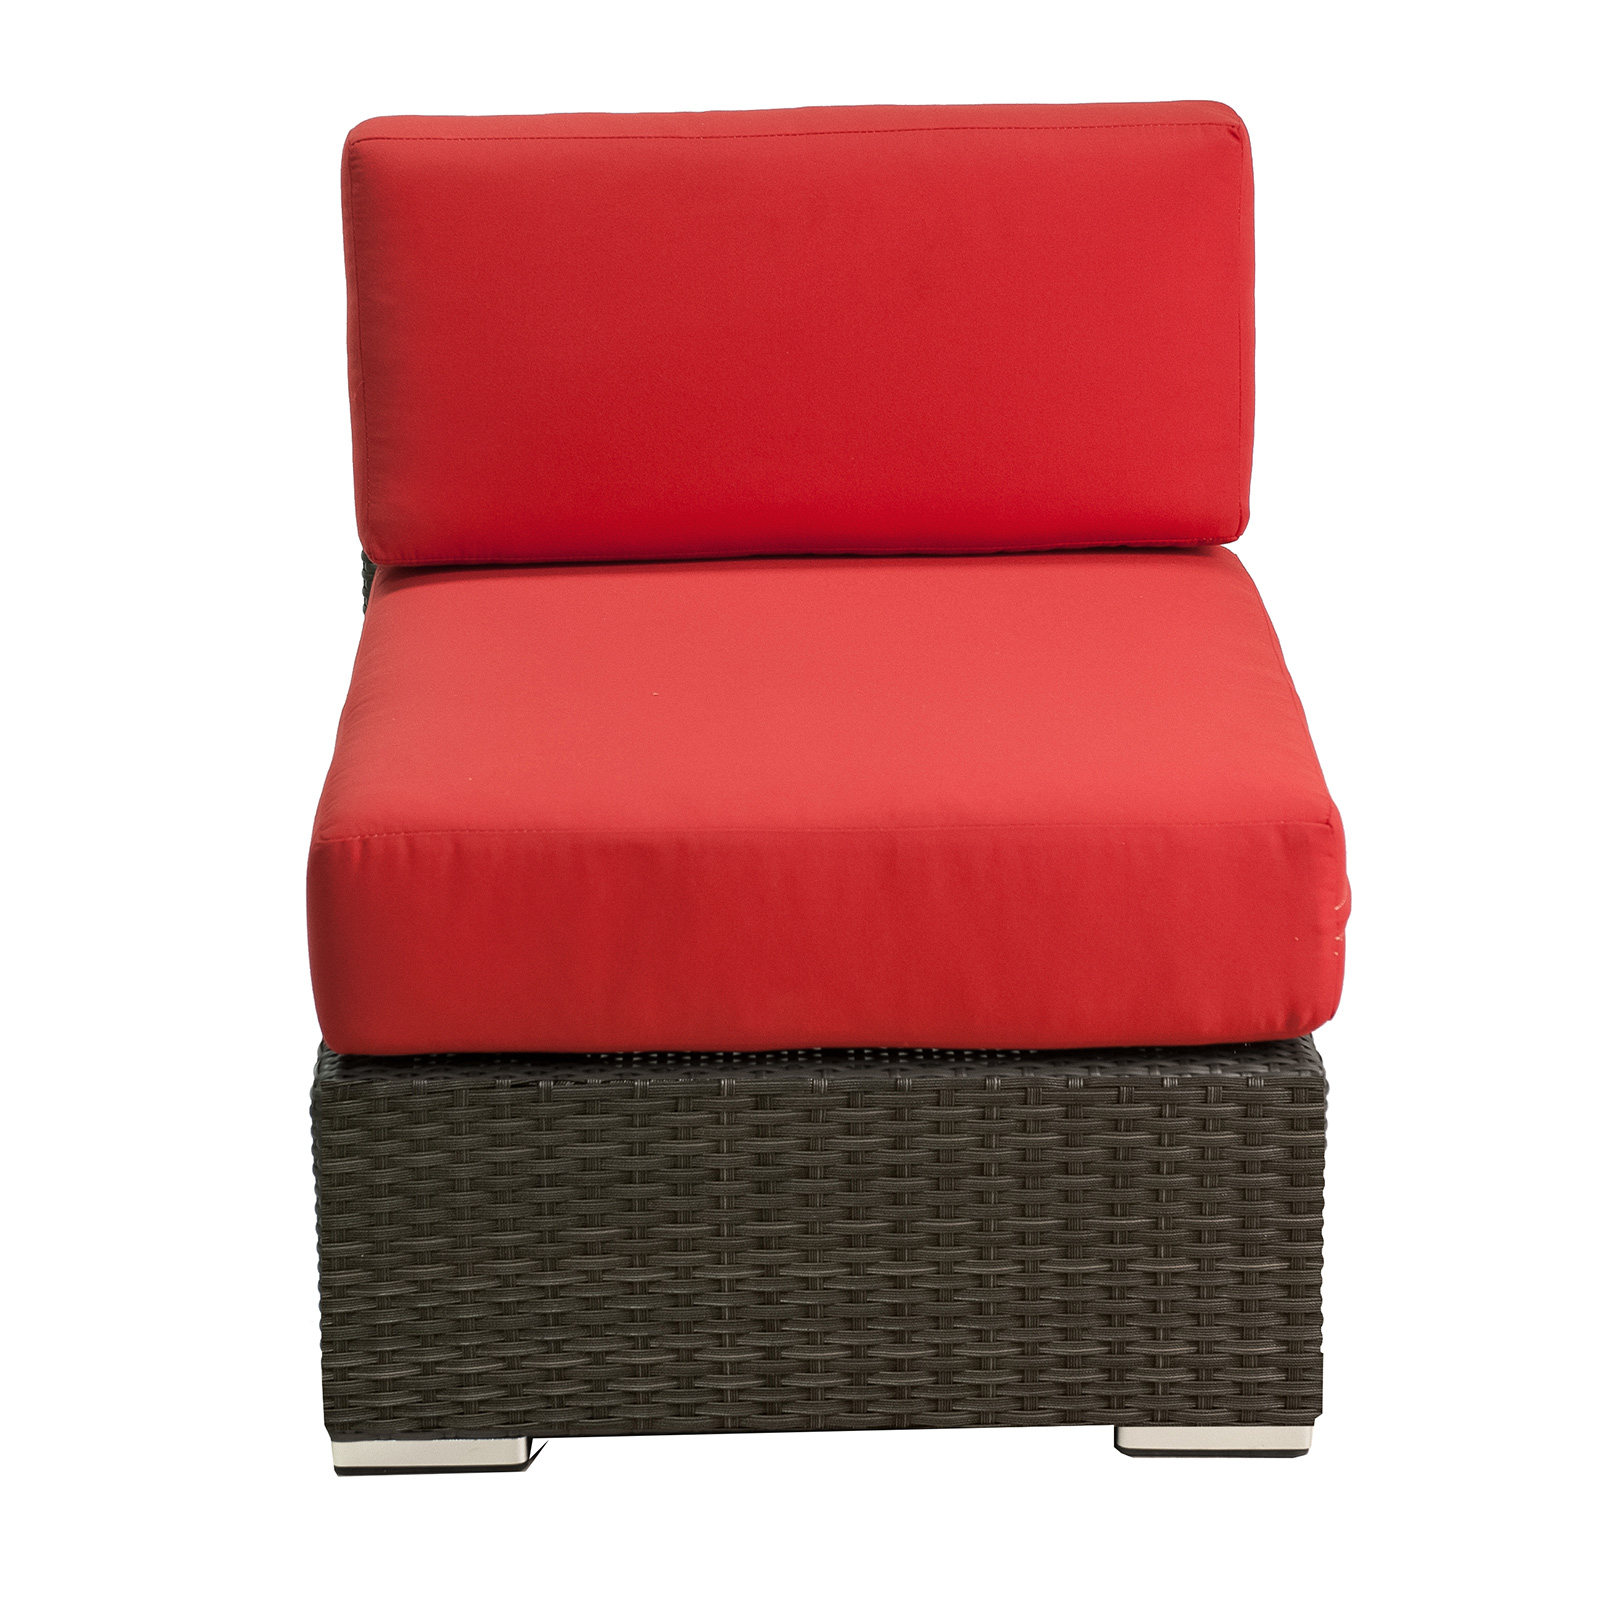 Florida Seating CB SIDE CHAIR chair, lounge, outdoor